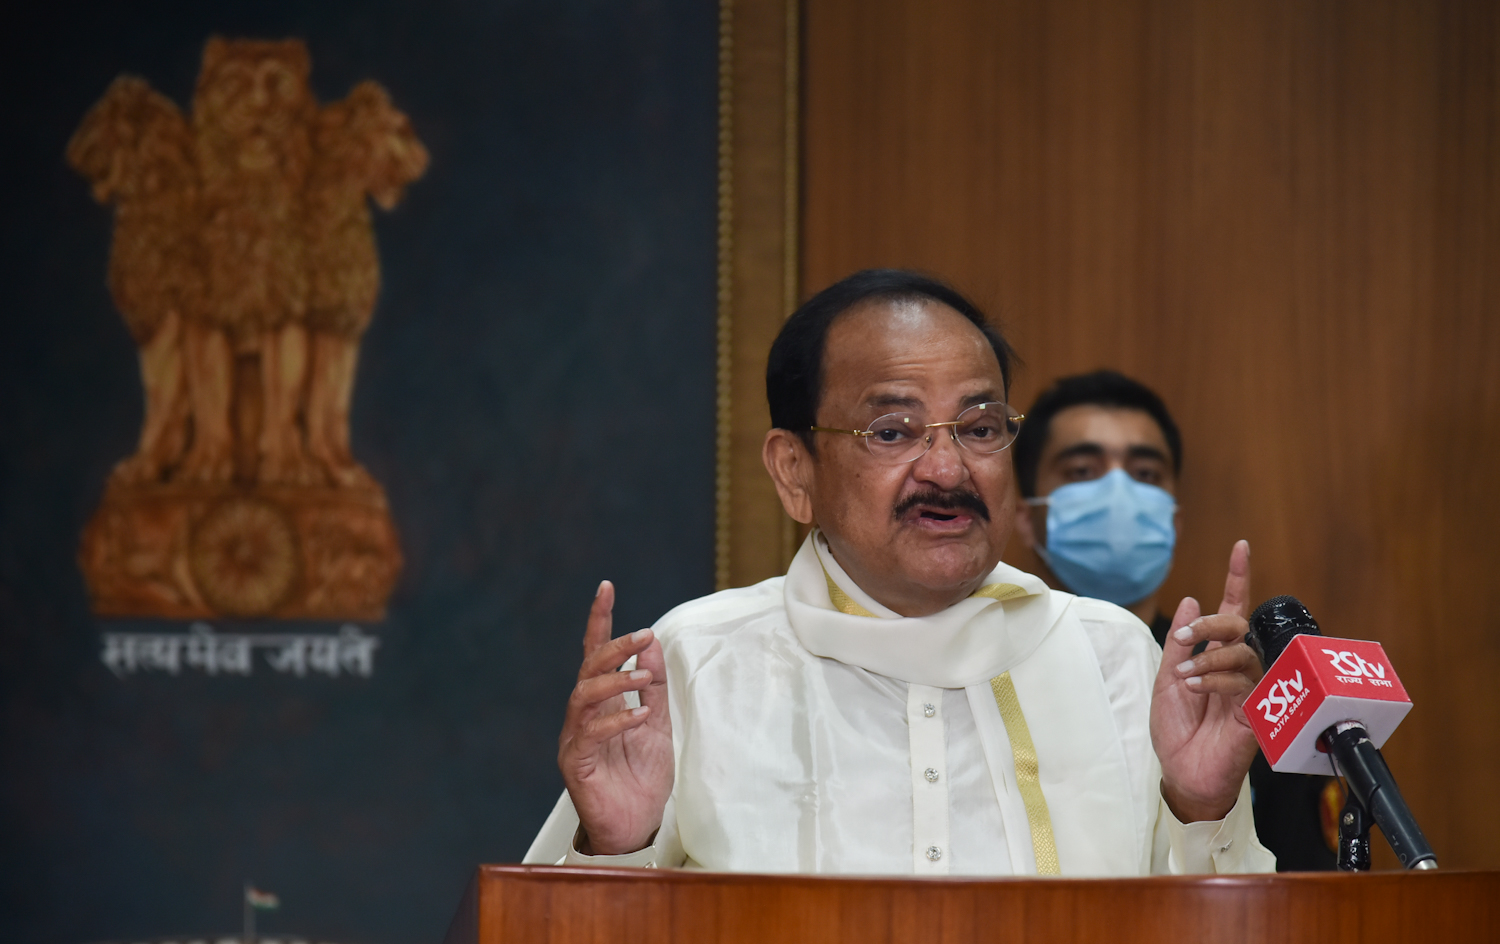 The Vice President, Shri M. Venkaiah Naidu addressing at the virtual launch of the 24th 'Parampara Series - National Festival of Music and Dance', organised by the Natya Tarangini in partnership with the United Nations, in New Delhi on October 27, 2020.